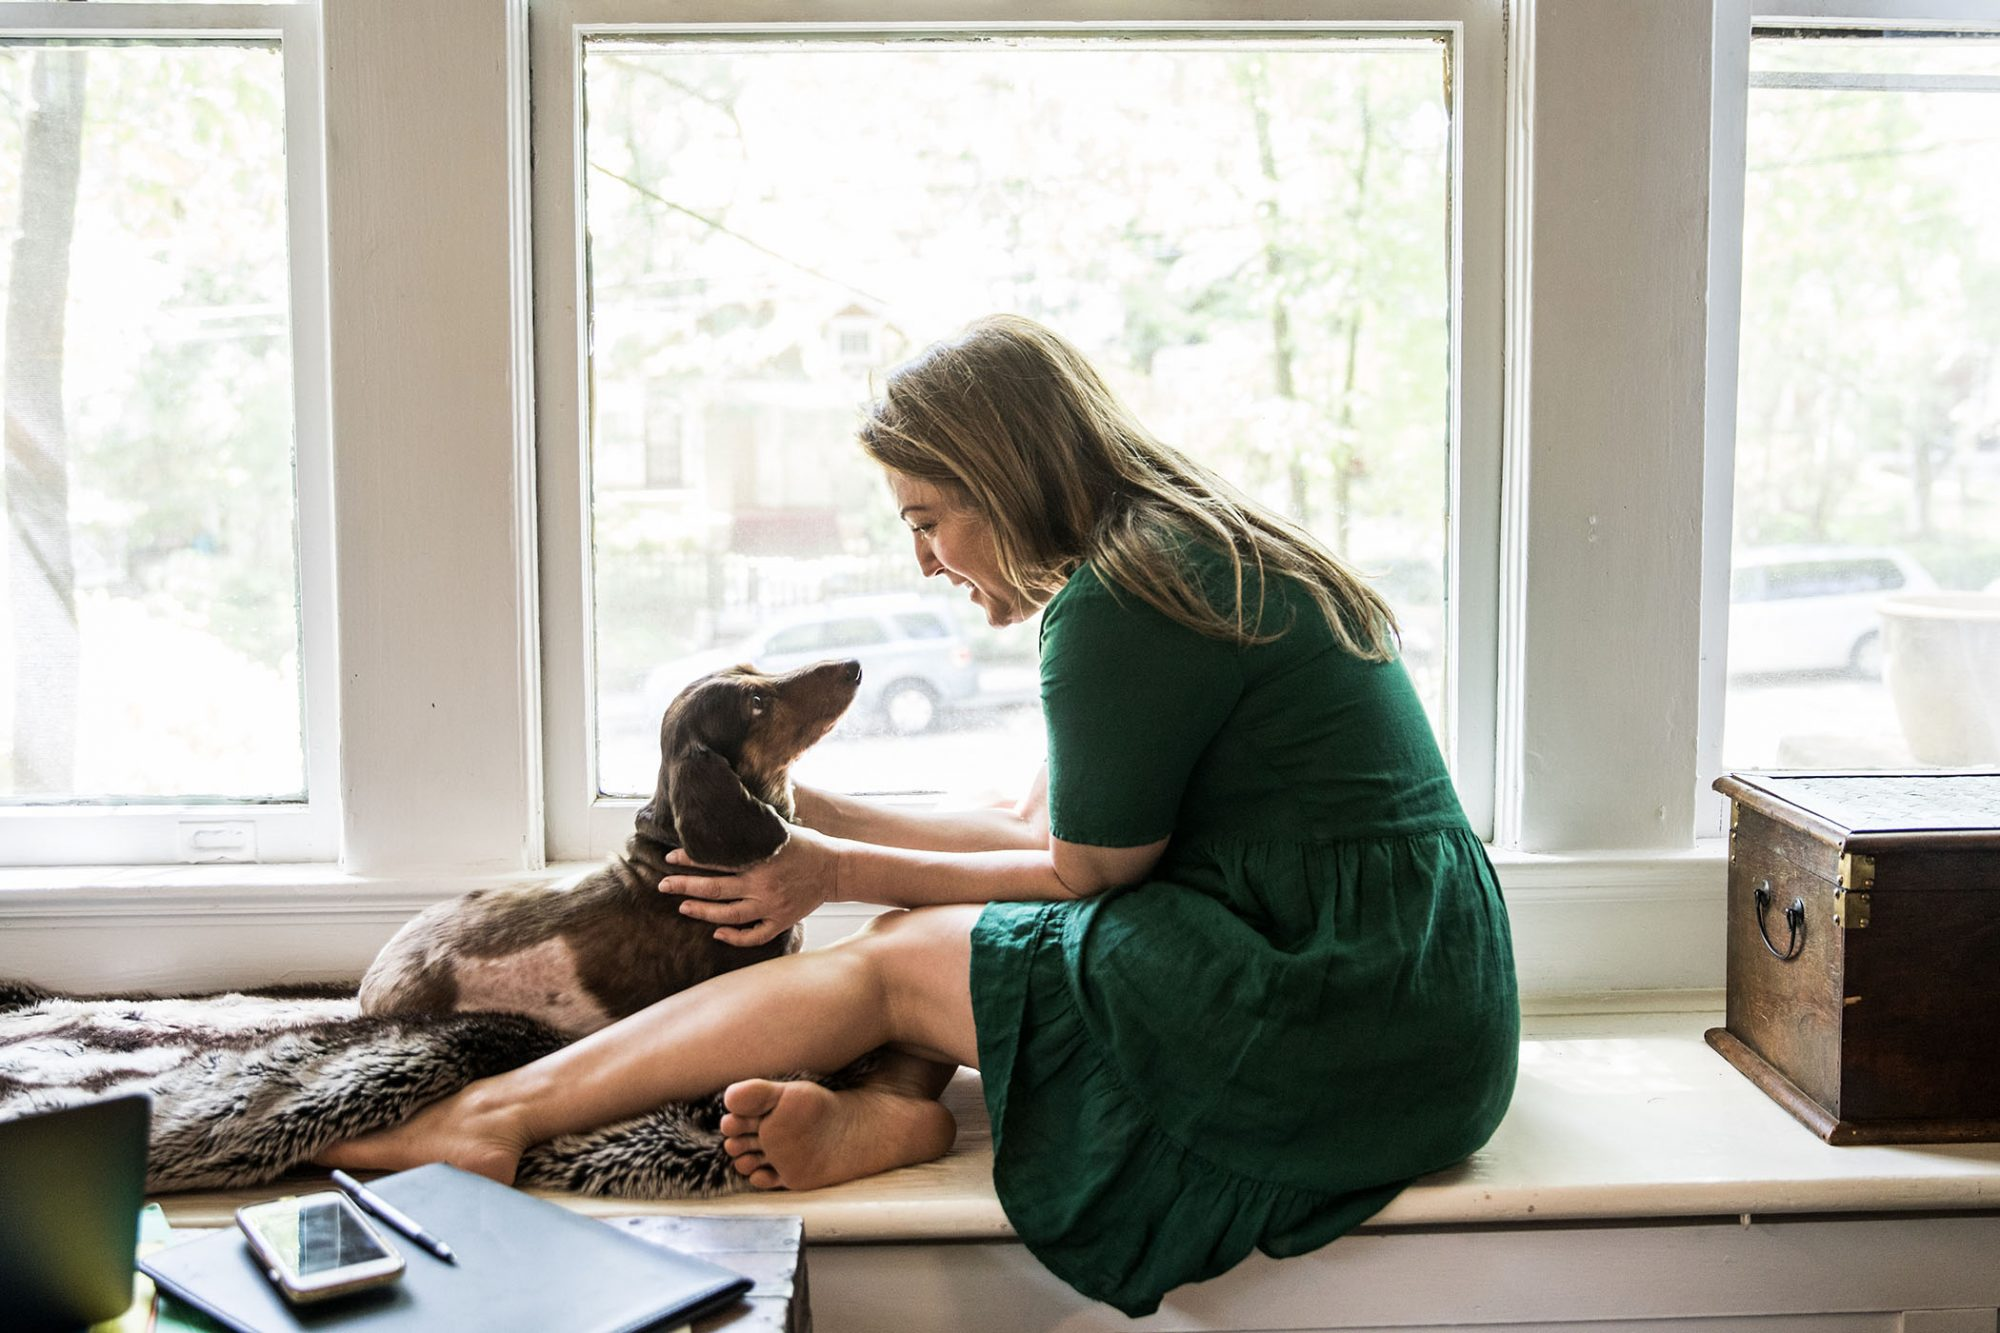 woman with dachshund sitting on window seat